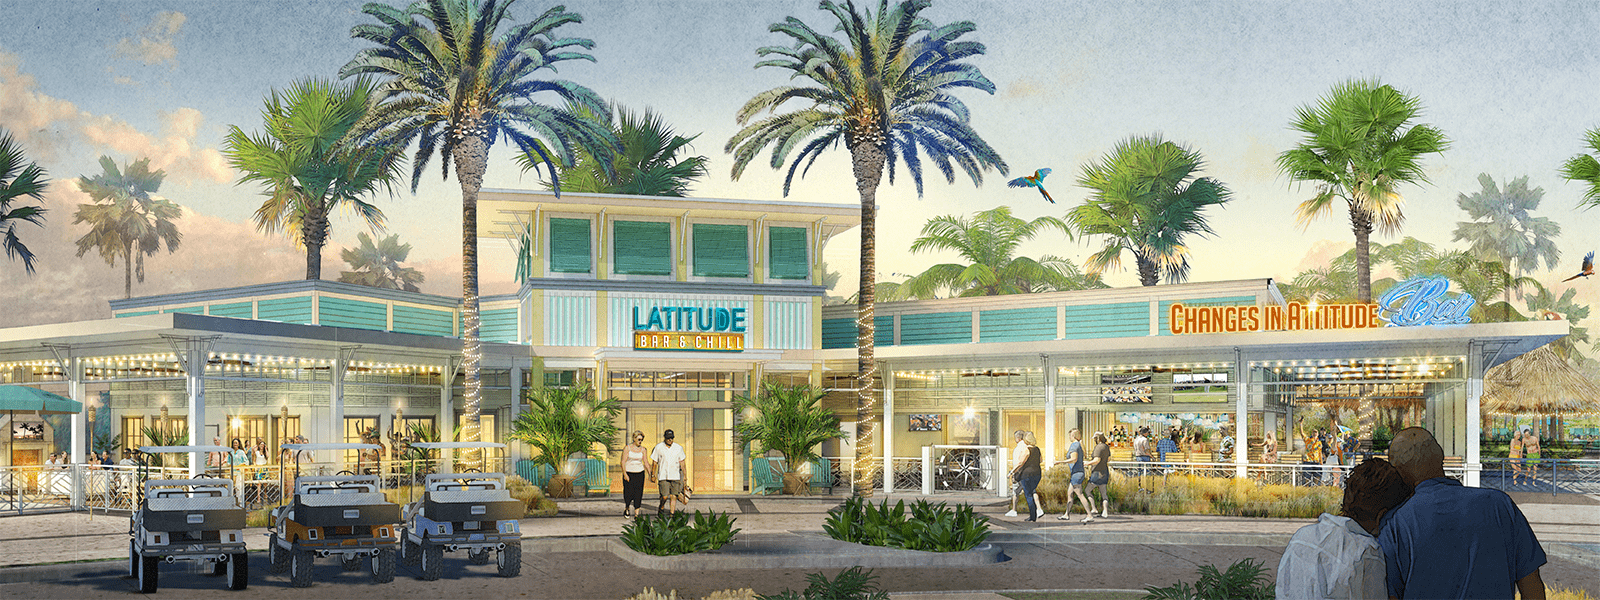 Latitude Margaritaville Daytona Beach FL | Minto Community Jimmy Buffett